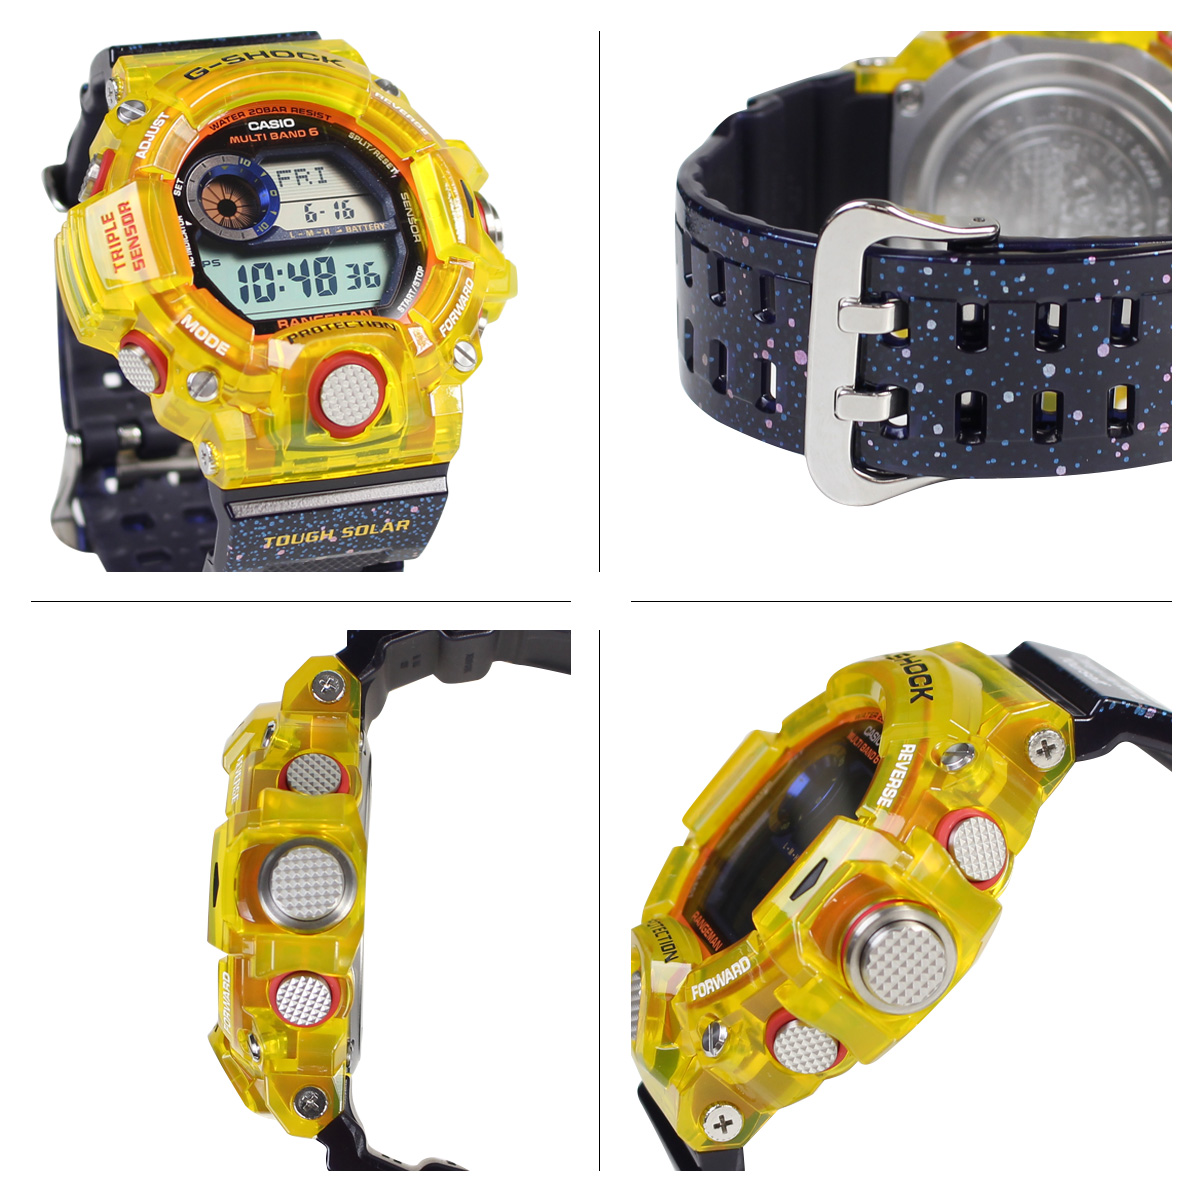 [SOLD OUT] Casio CASIO G-SHOCK range man 2017 watch GW-9403KJ-9JR ジーショック G-Shock G- shock yellow collaboration men [load planned Shinnyu load in reservation product 6/17 containing]